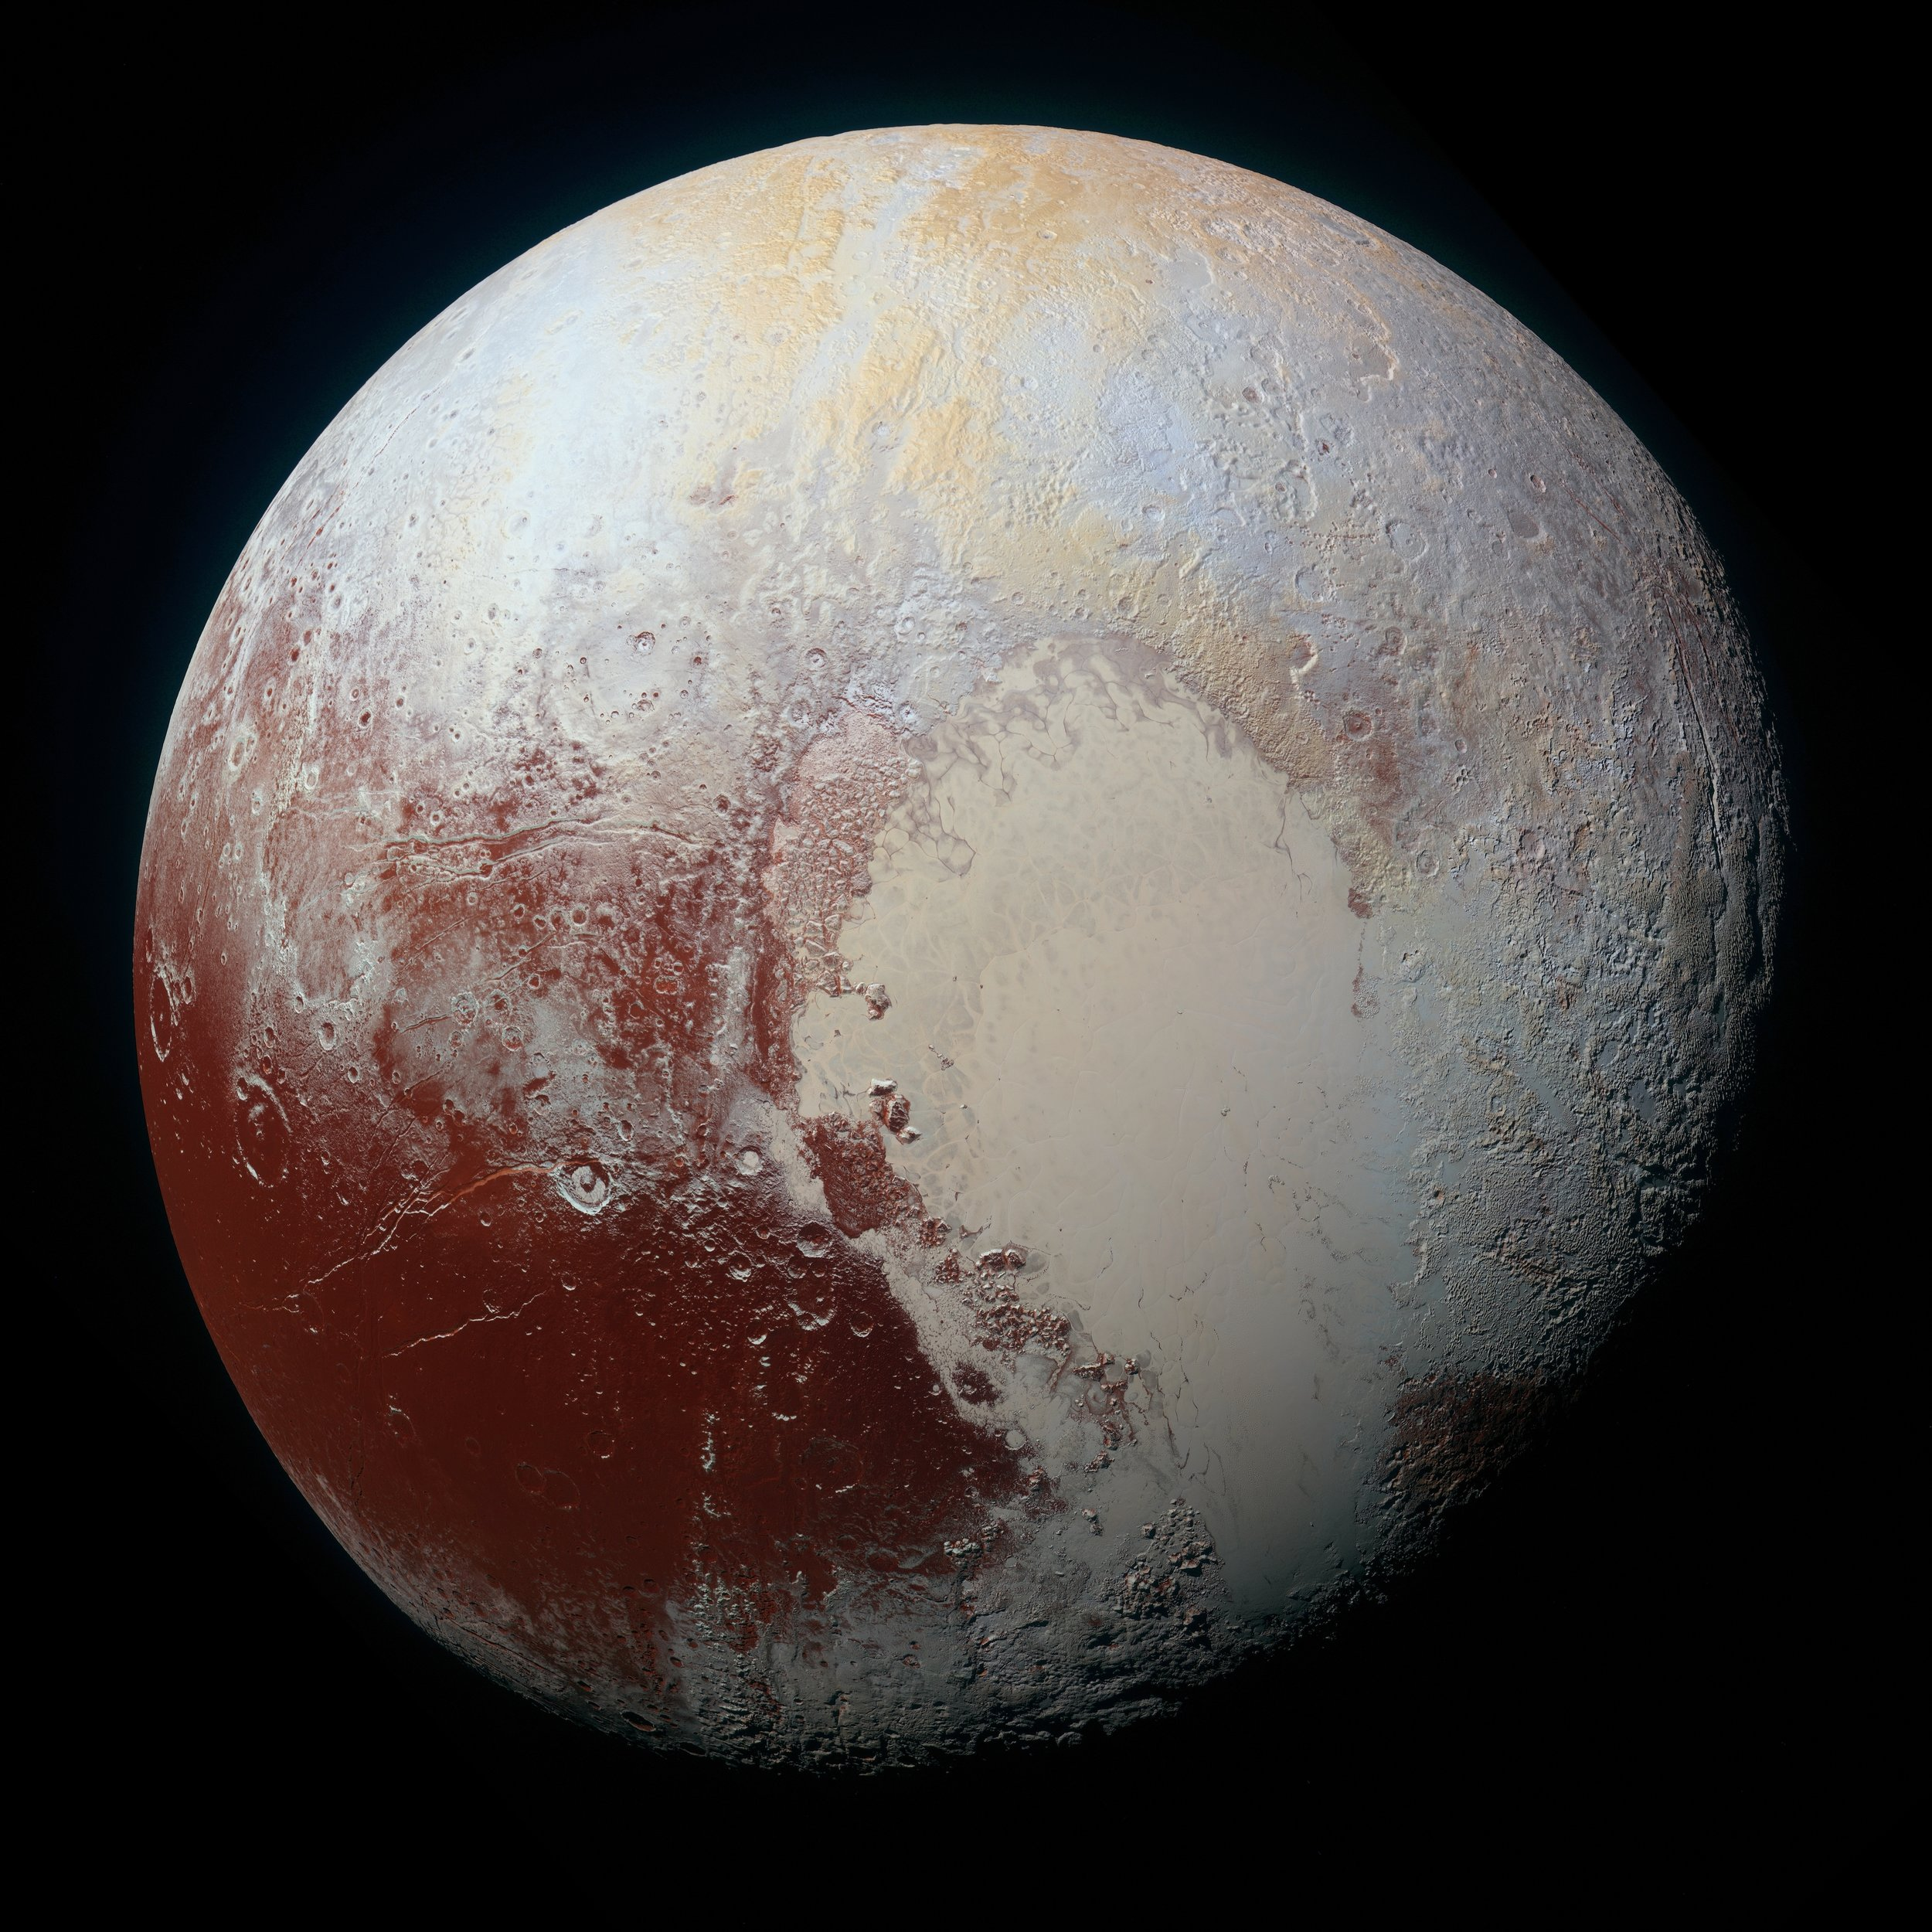 Pluto as imaged by New Horizons.